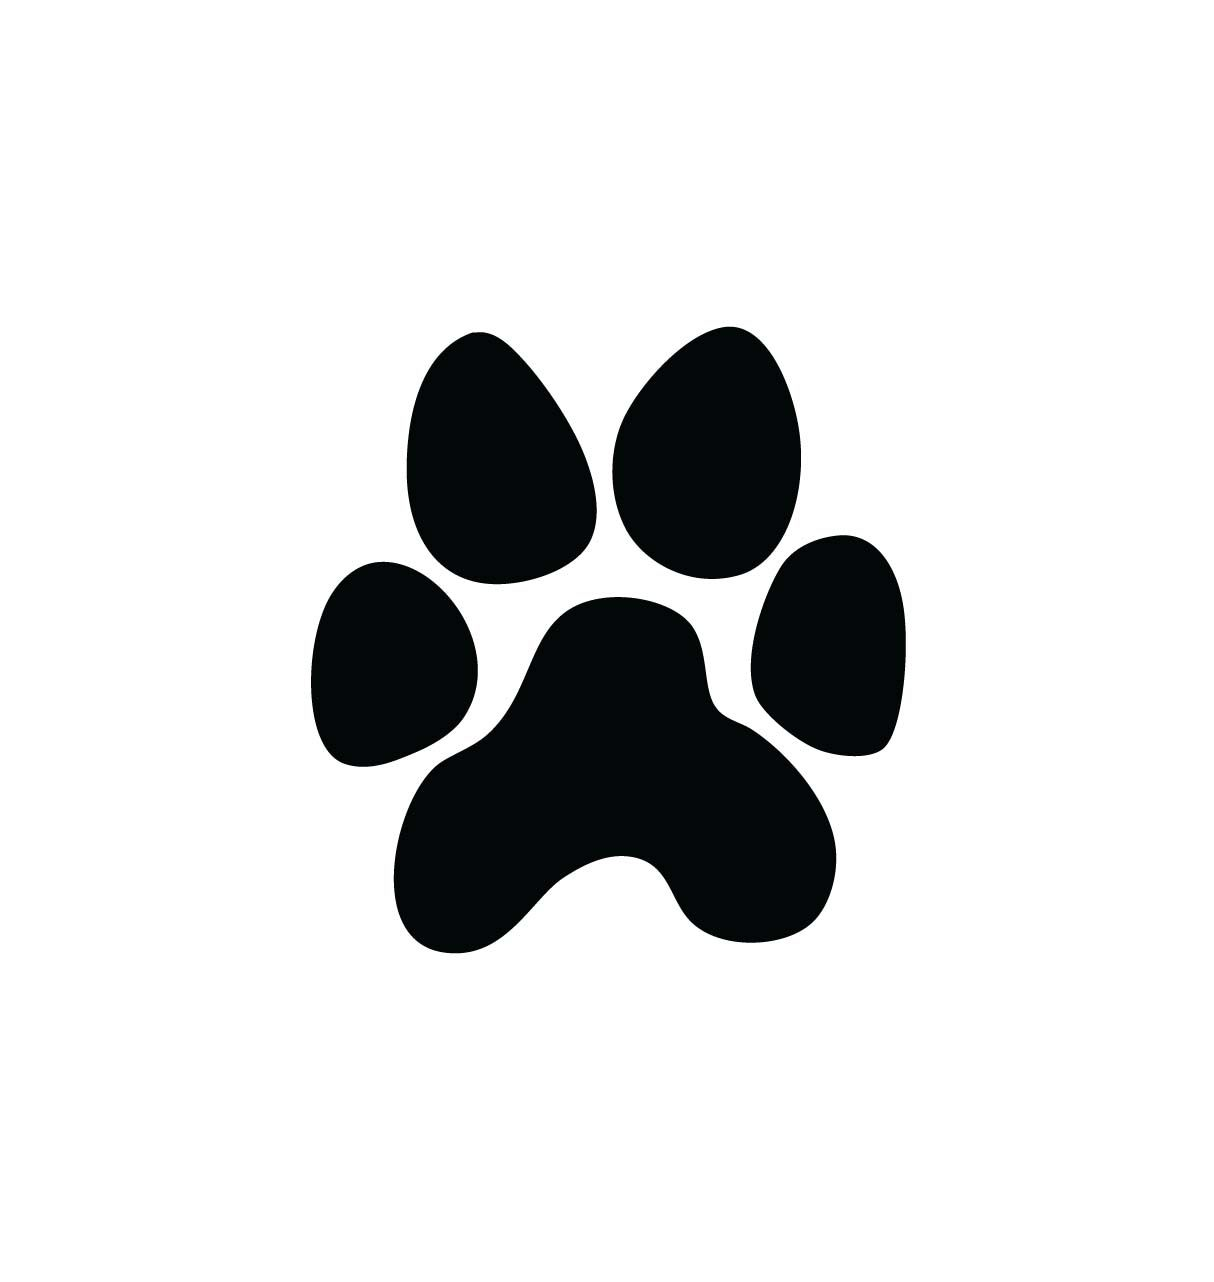 Dog paw gallery for. Pawprint clipart cat